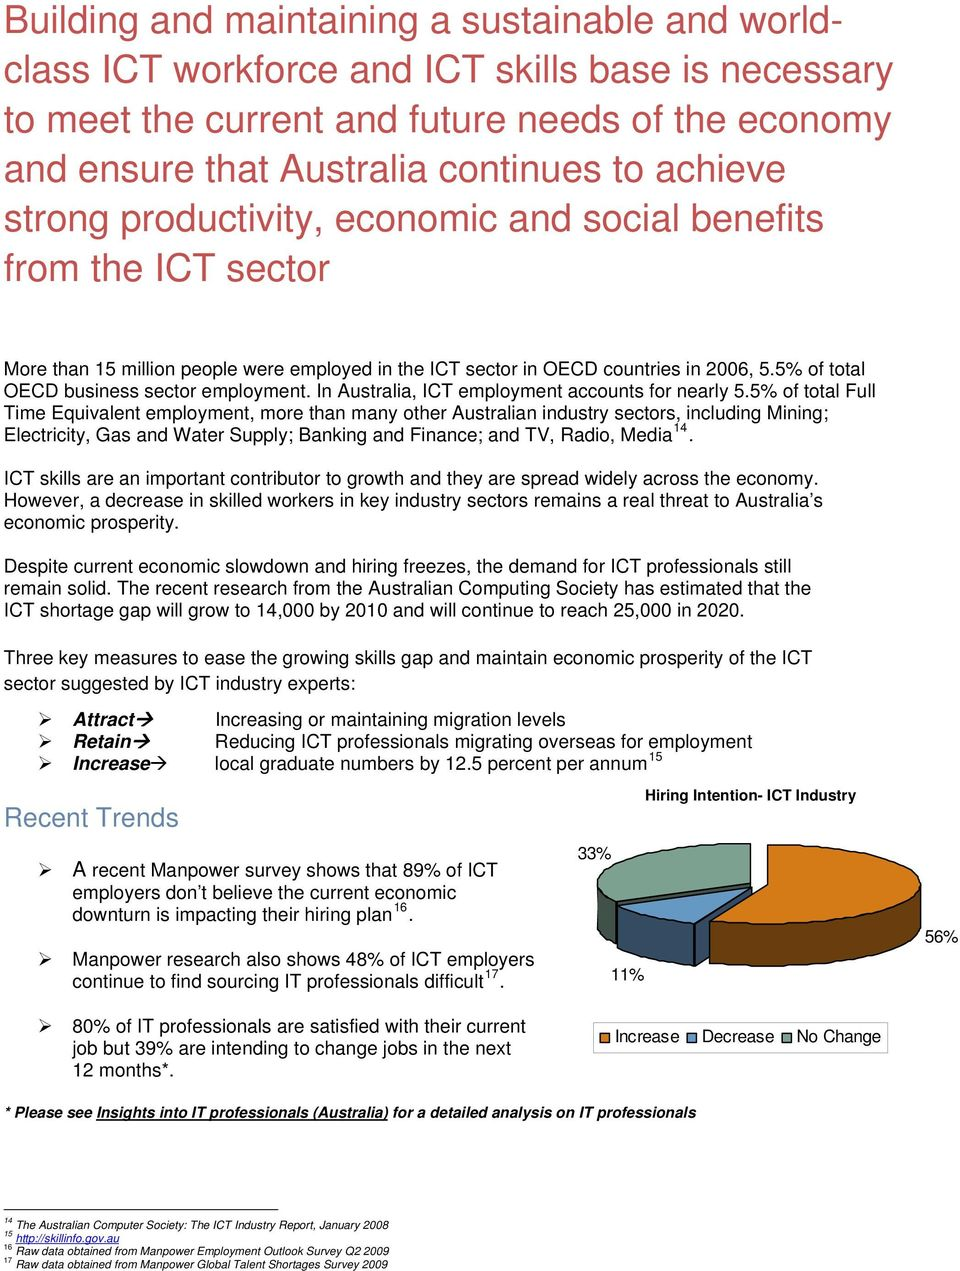 5% of total OECD business sector employment. In Australia, ICT employment accounts for nearly 5.